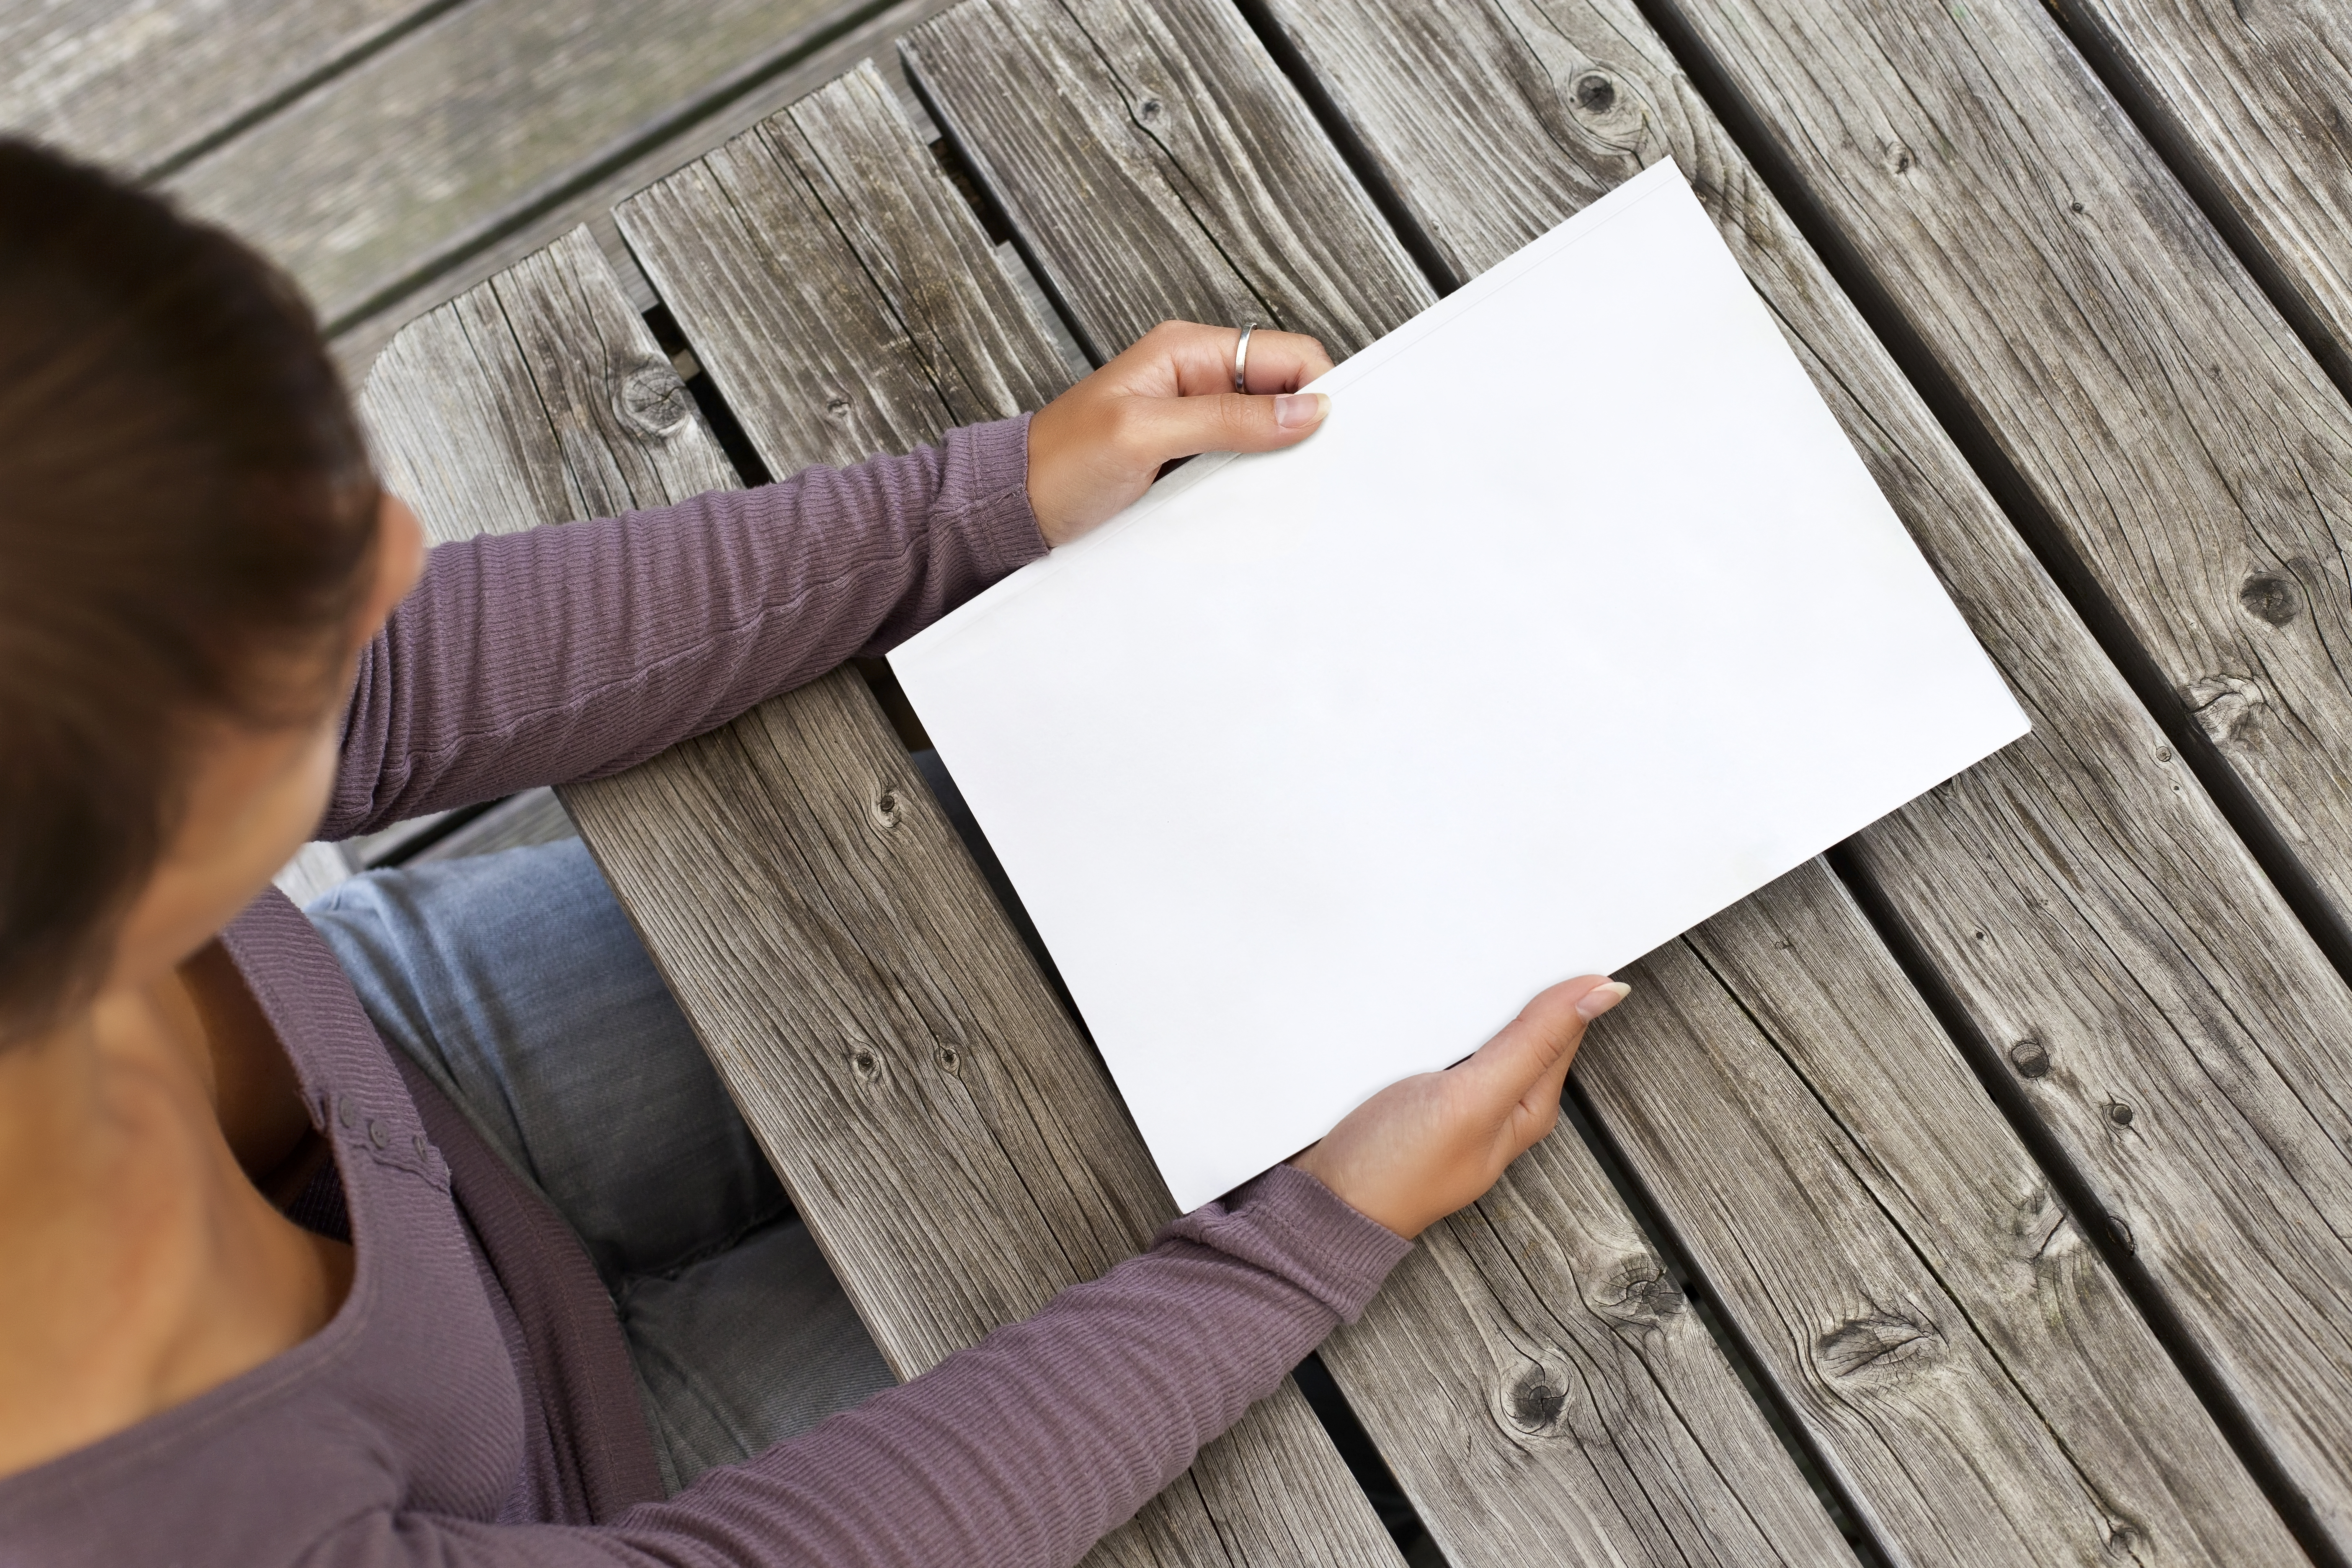 Woman in a purple shirt holding a white pad of paper, looking down.